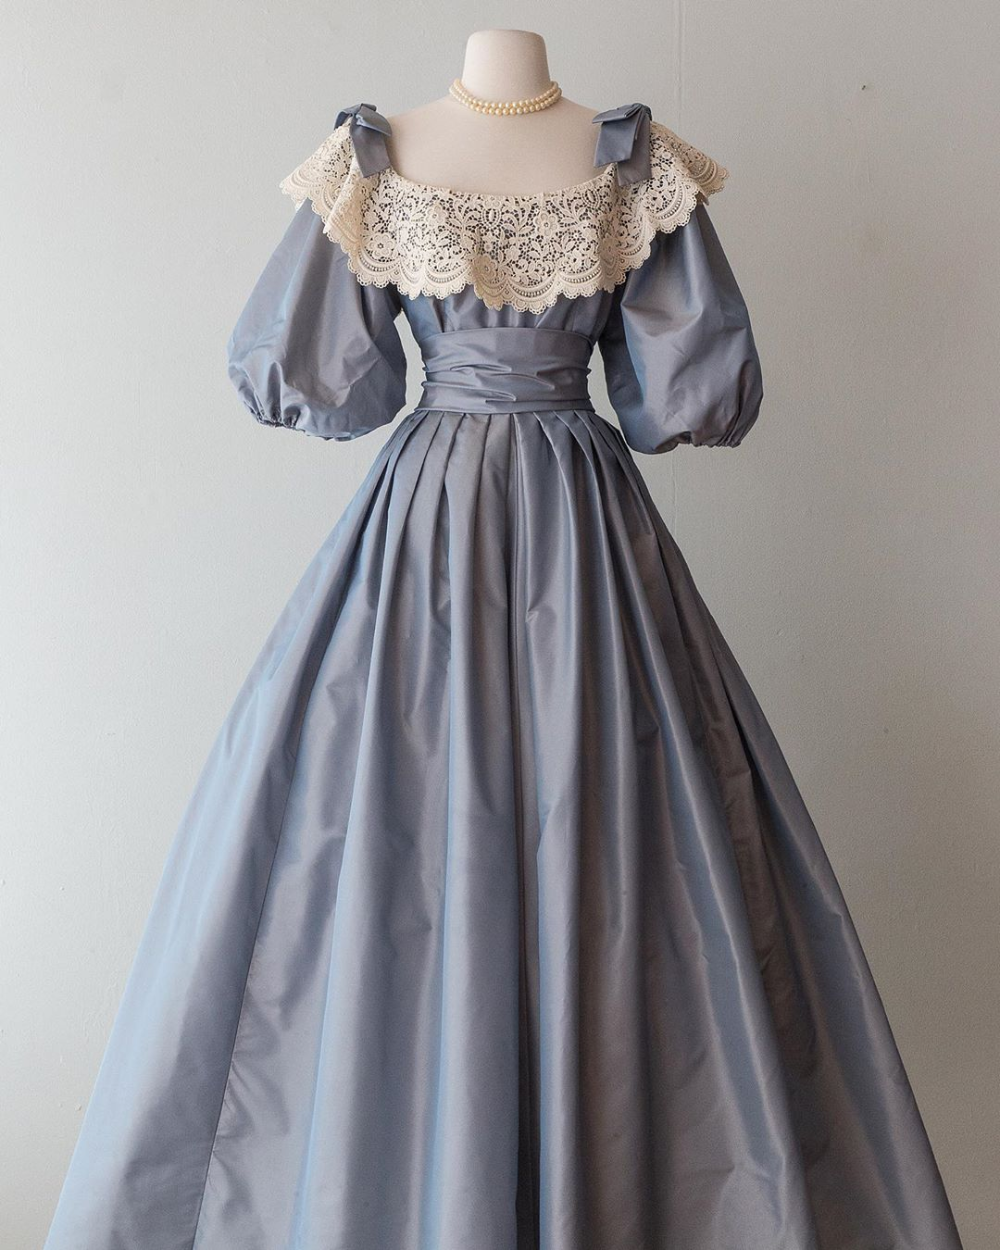 X T A B A Y On Instagram Princess Your New Dress Is Waiting Old Fashion Dresses Historical Dresses Fashion Dresses [ 1250 x 1000 Pixel ]